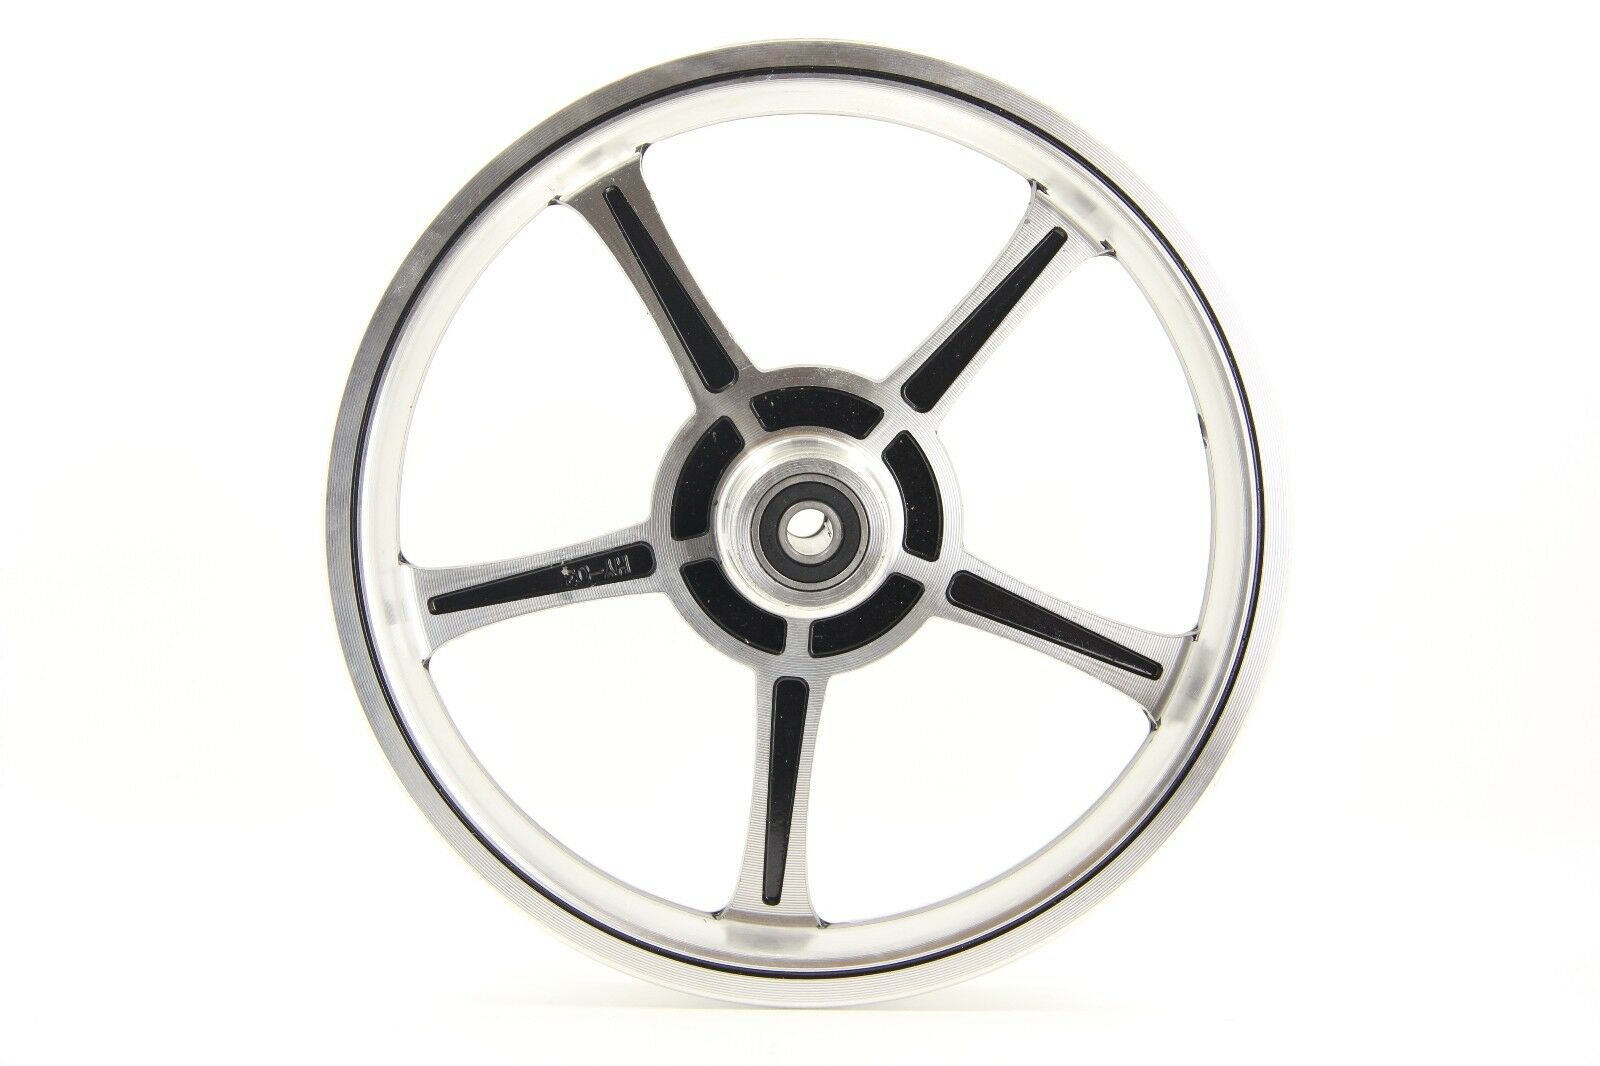 Bike Bicycle Front Wheel 12  X 1.75 2.125 2.5'' Aluminum Scooter eBike Kids Bike  the lowest price